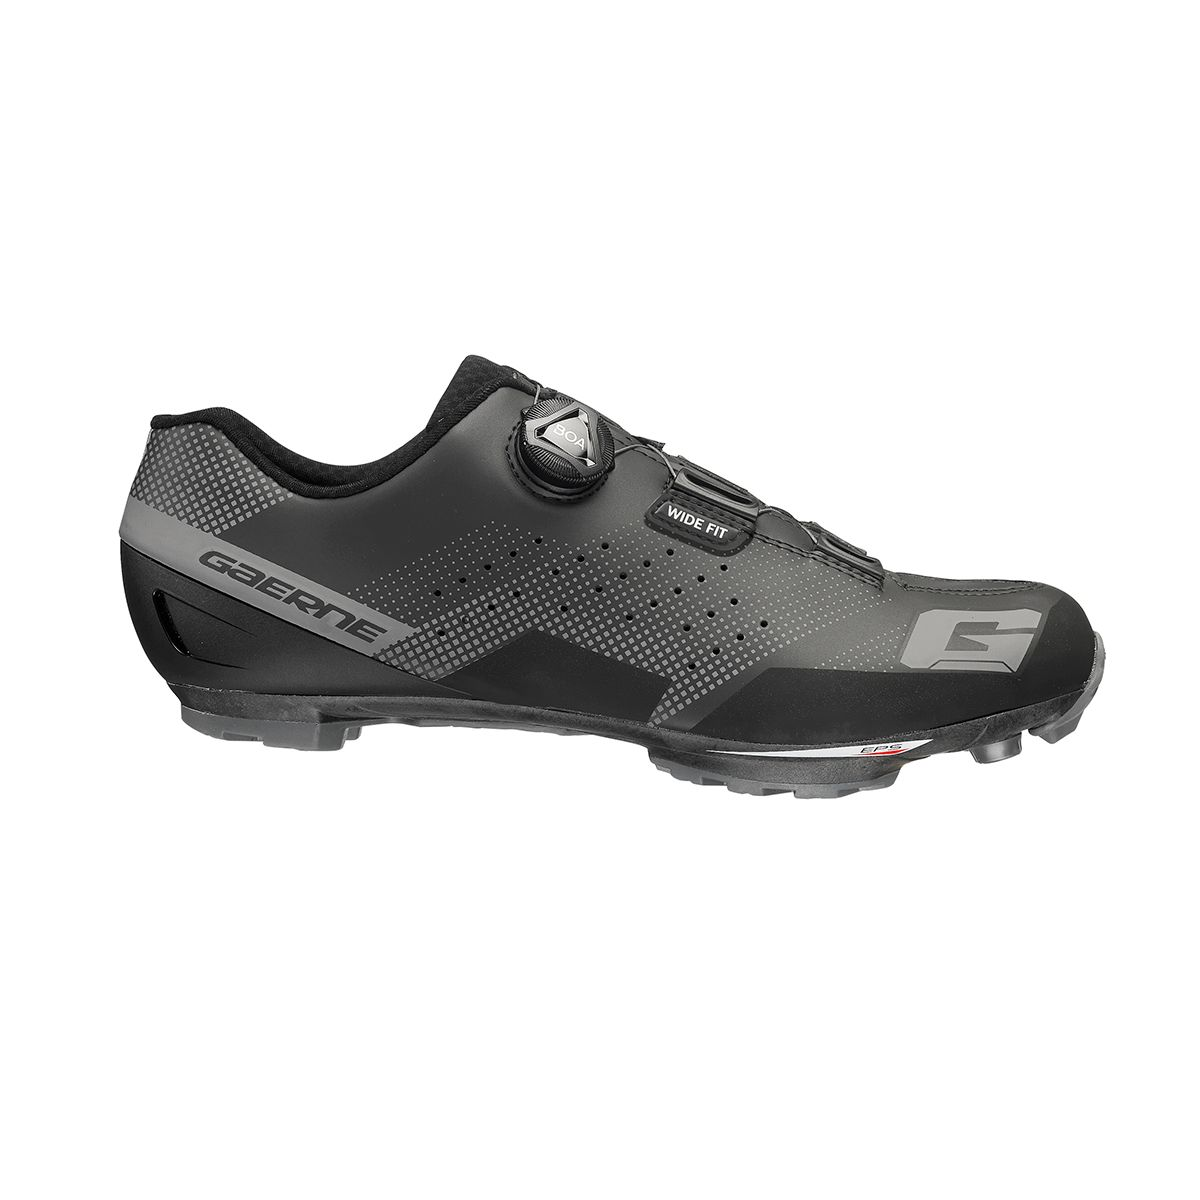 G.HURRICANE WIDE MTB Shoes